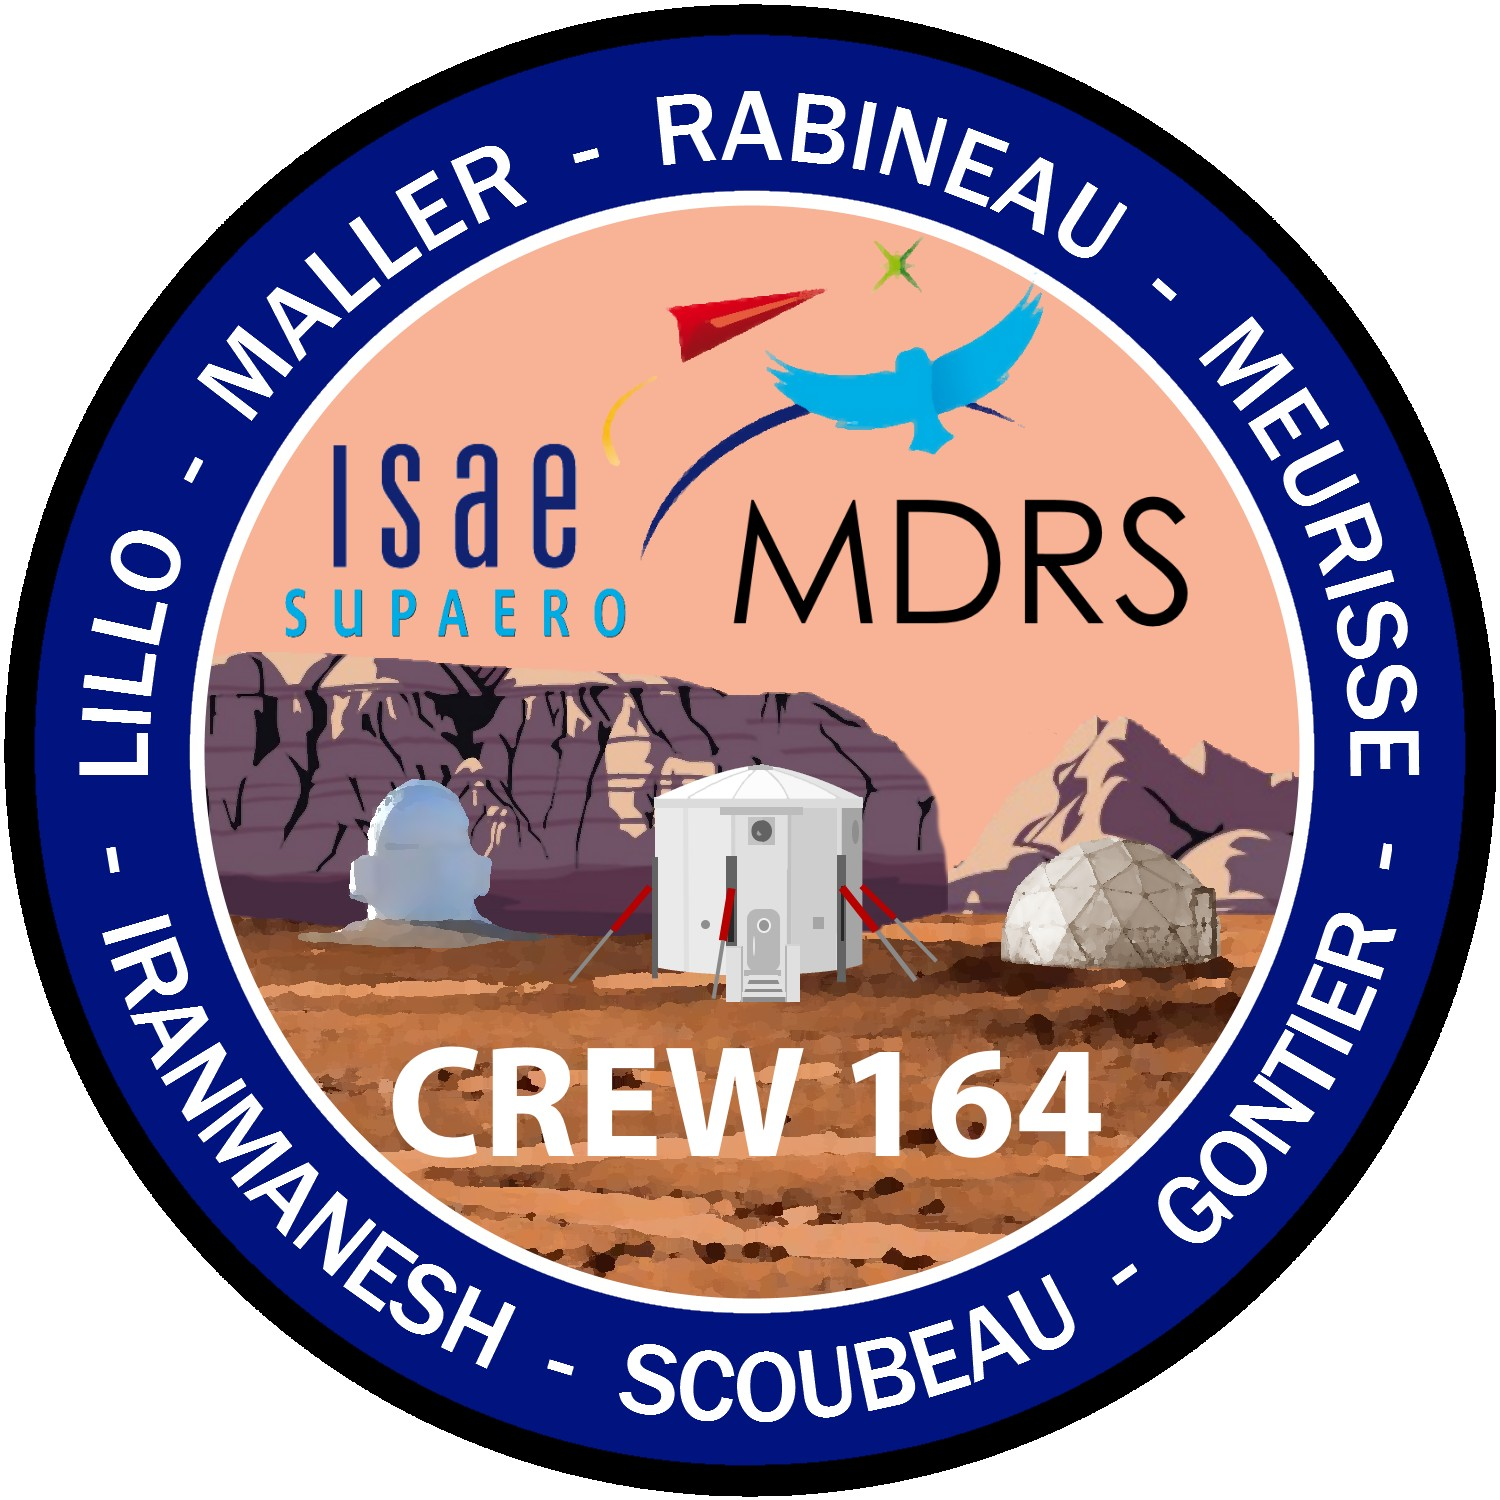 mdrs_164_missionpatch